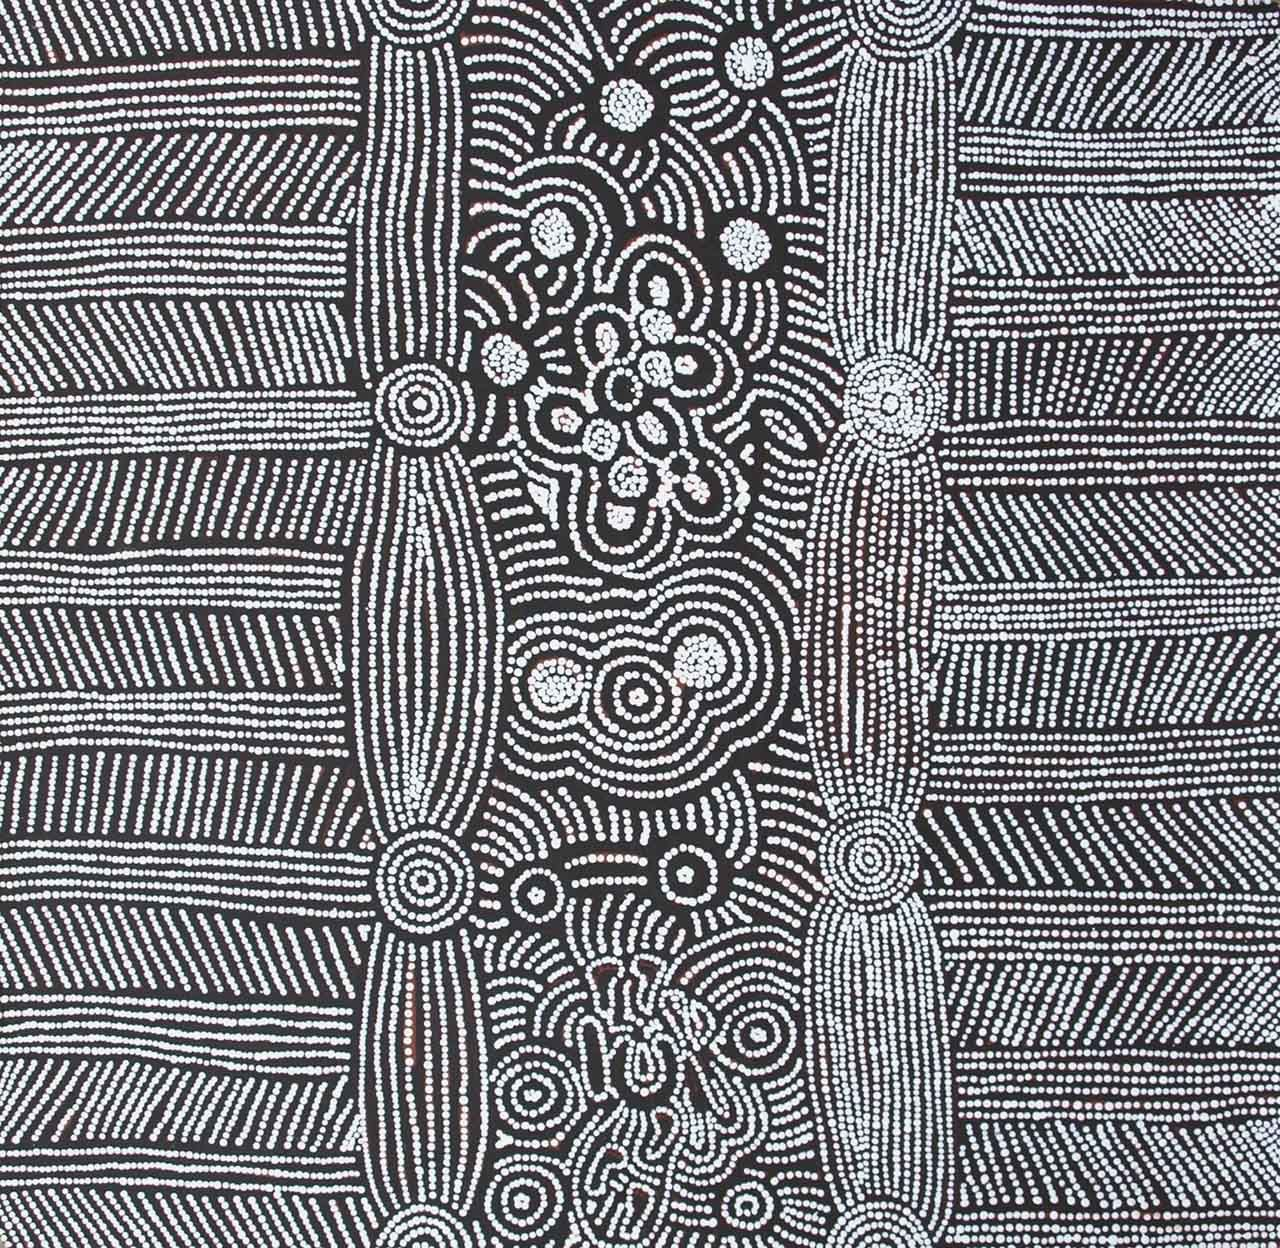 In black and white aboriginal art at japingka gallery